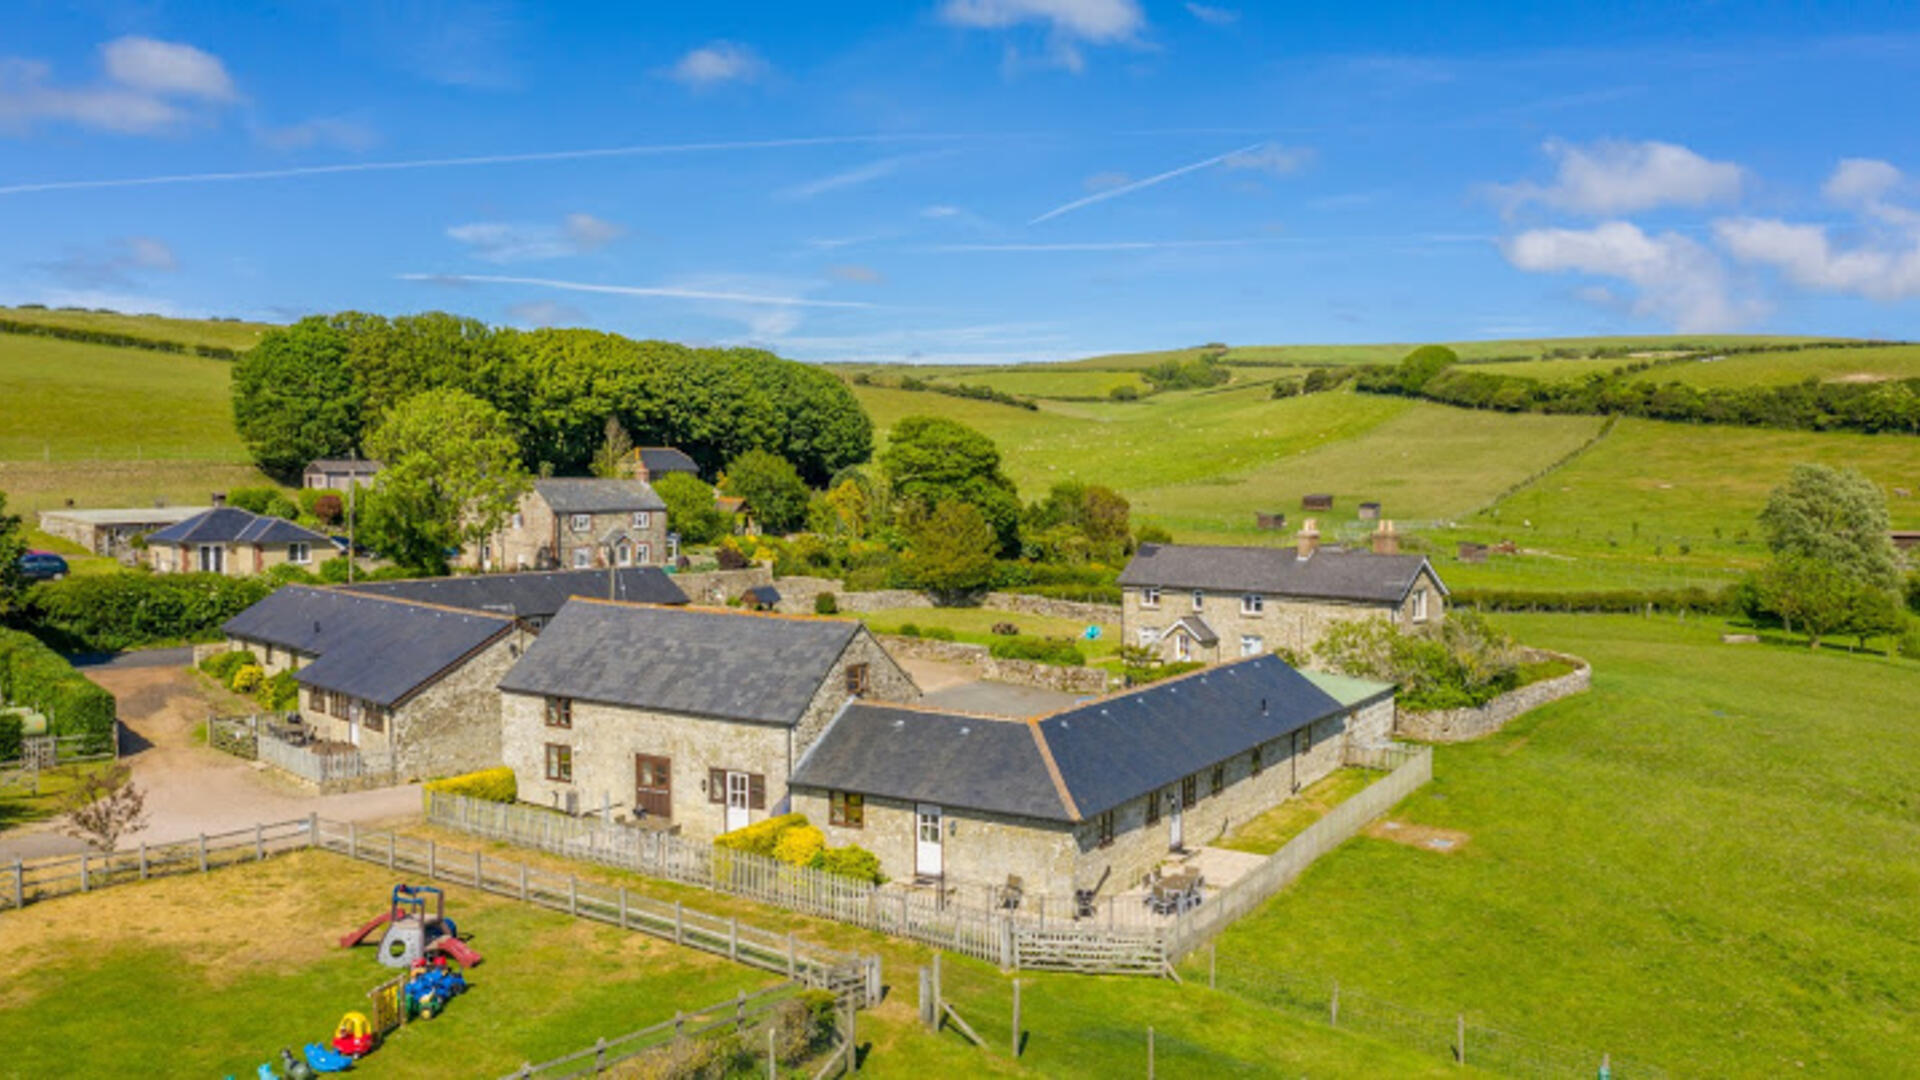 Nettlecombe Farm, farm-stay on Holiday Tots